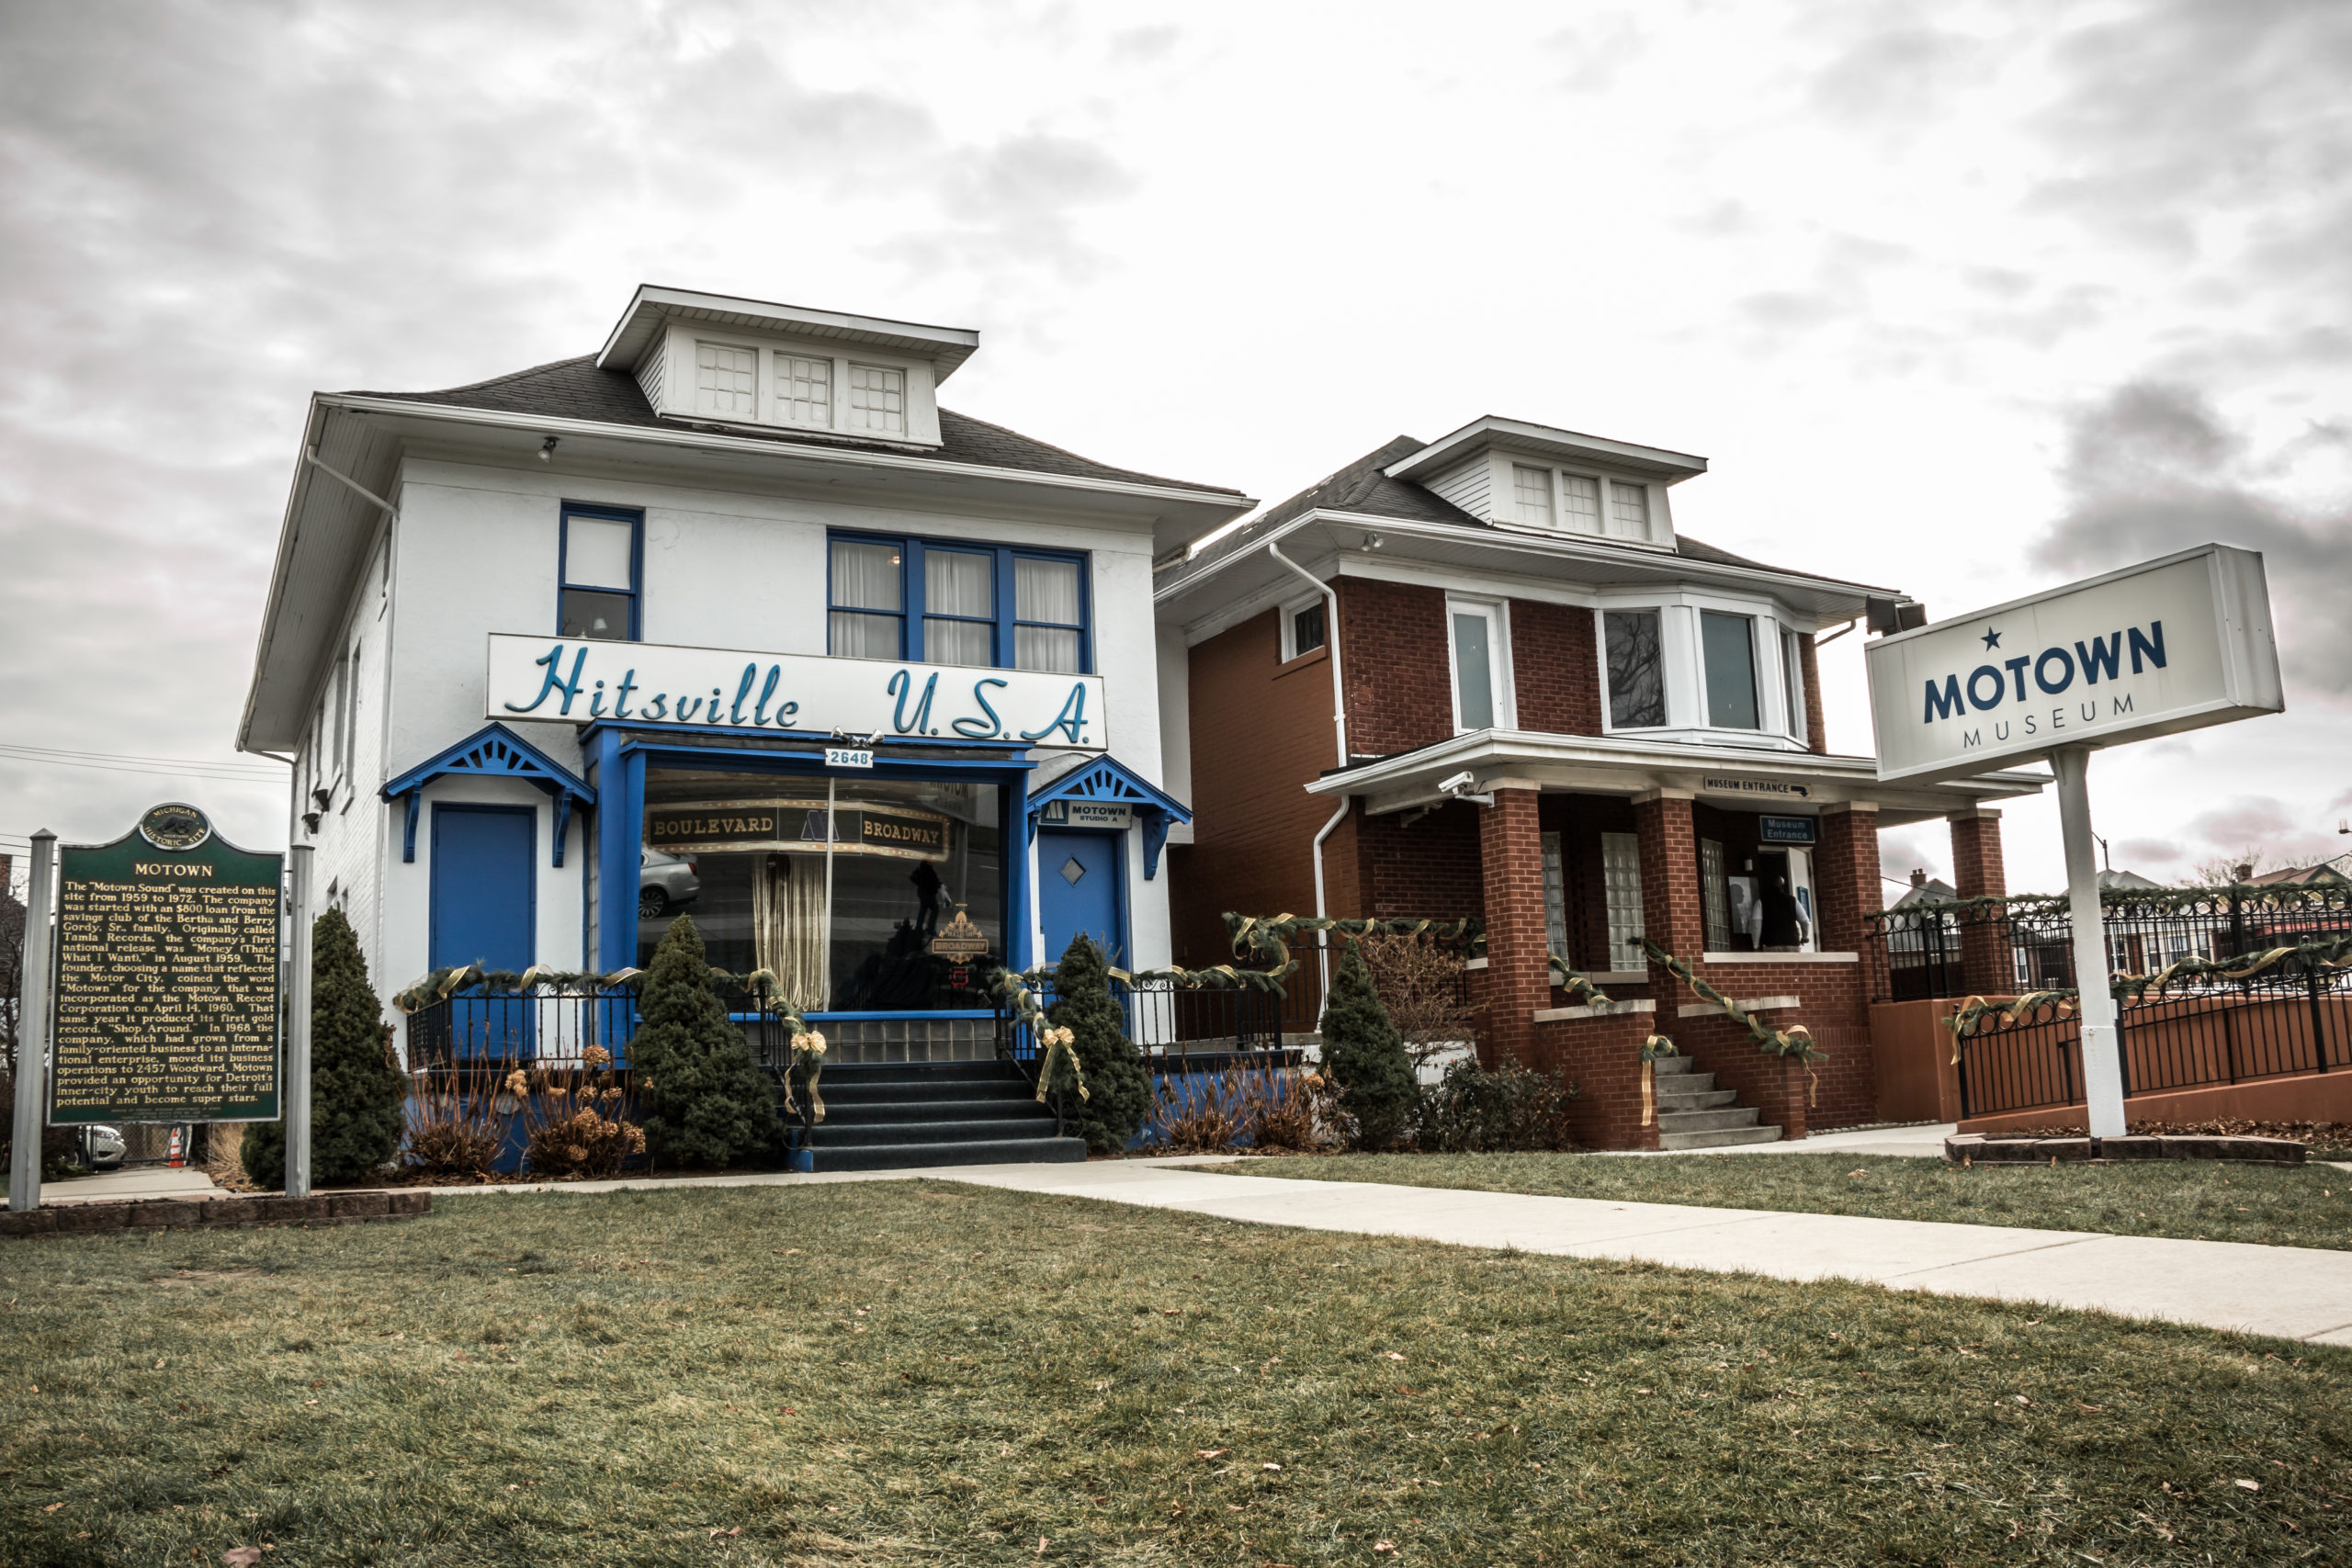 Motown - Visit all 50 states - Best things to do in each state